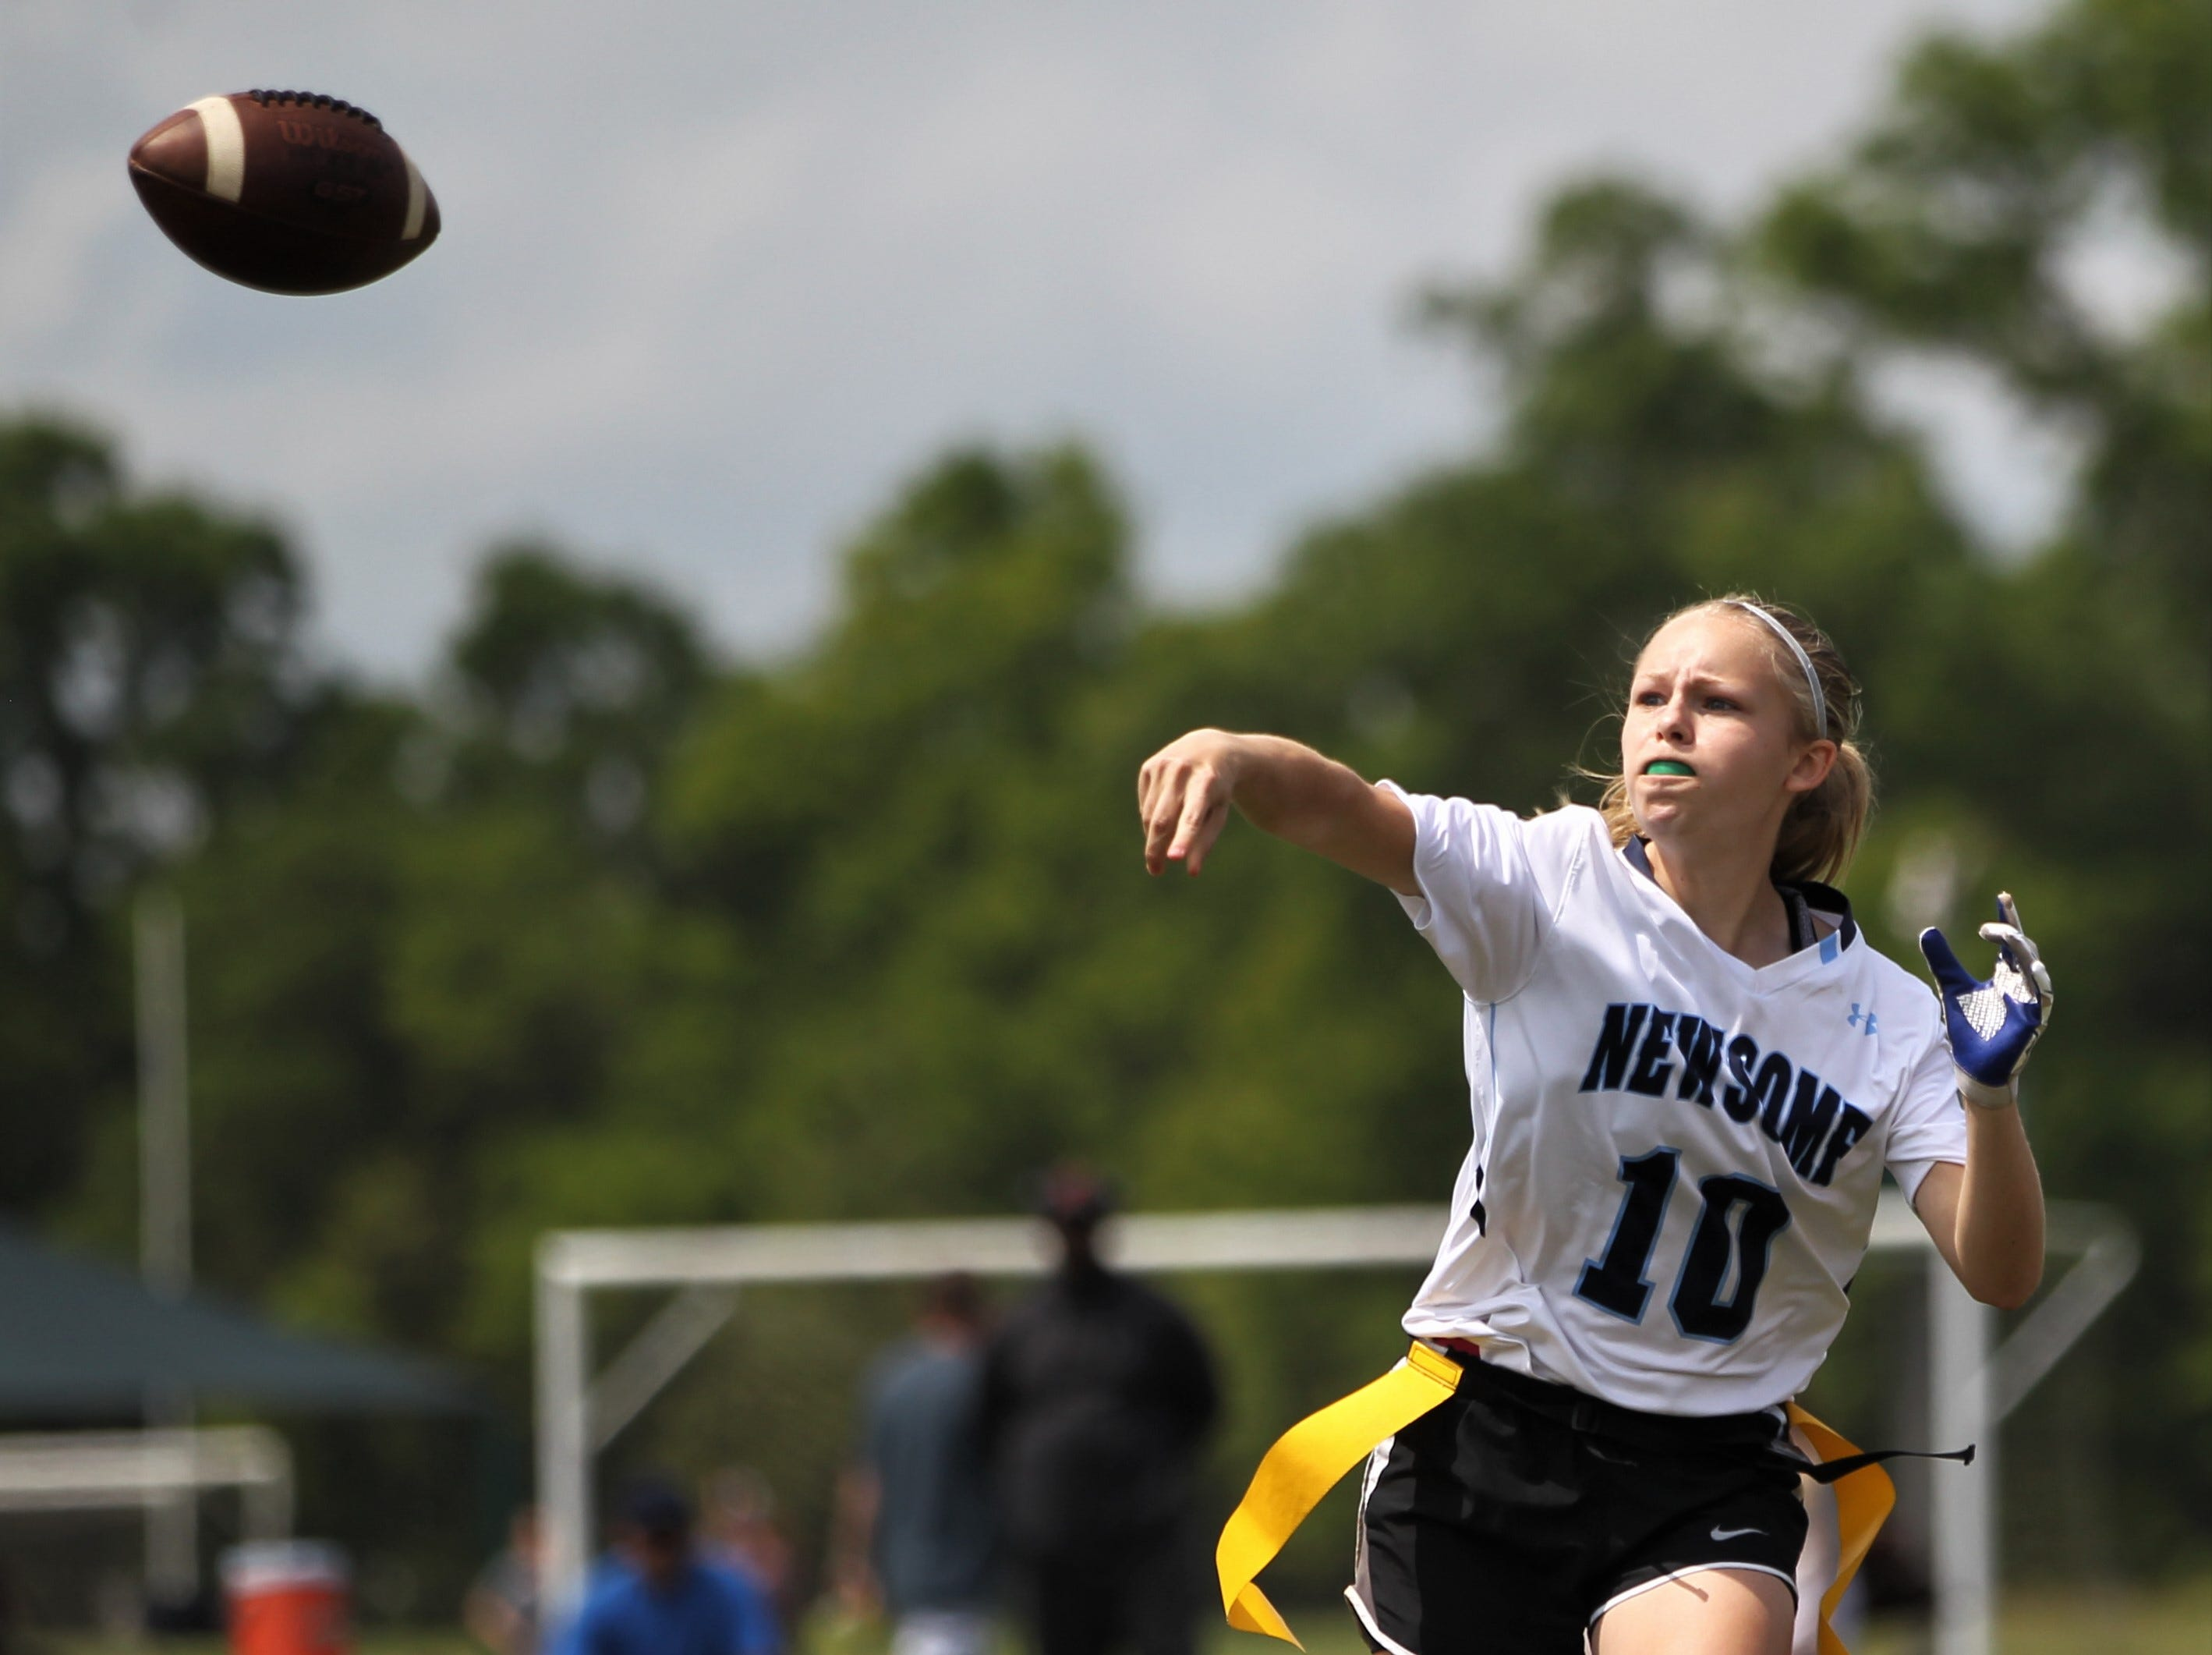 Newsome plays in the 2019 Capital City Classic flag football tournament at the FSU Rec SportsPlex on April 6, 2019.